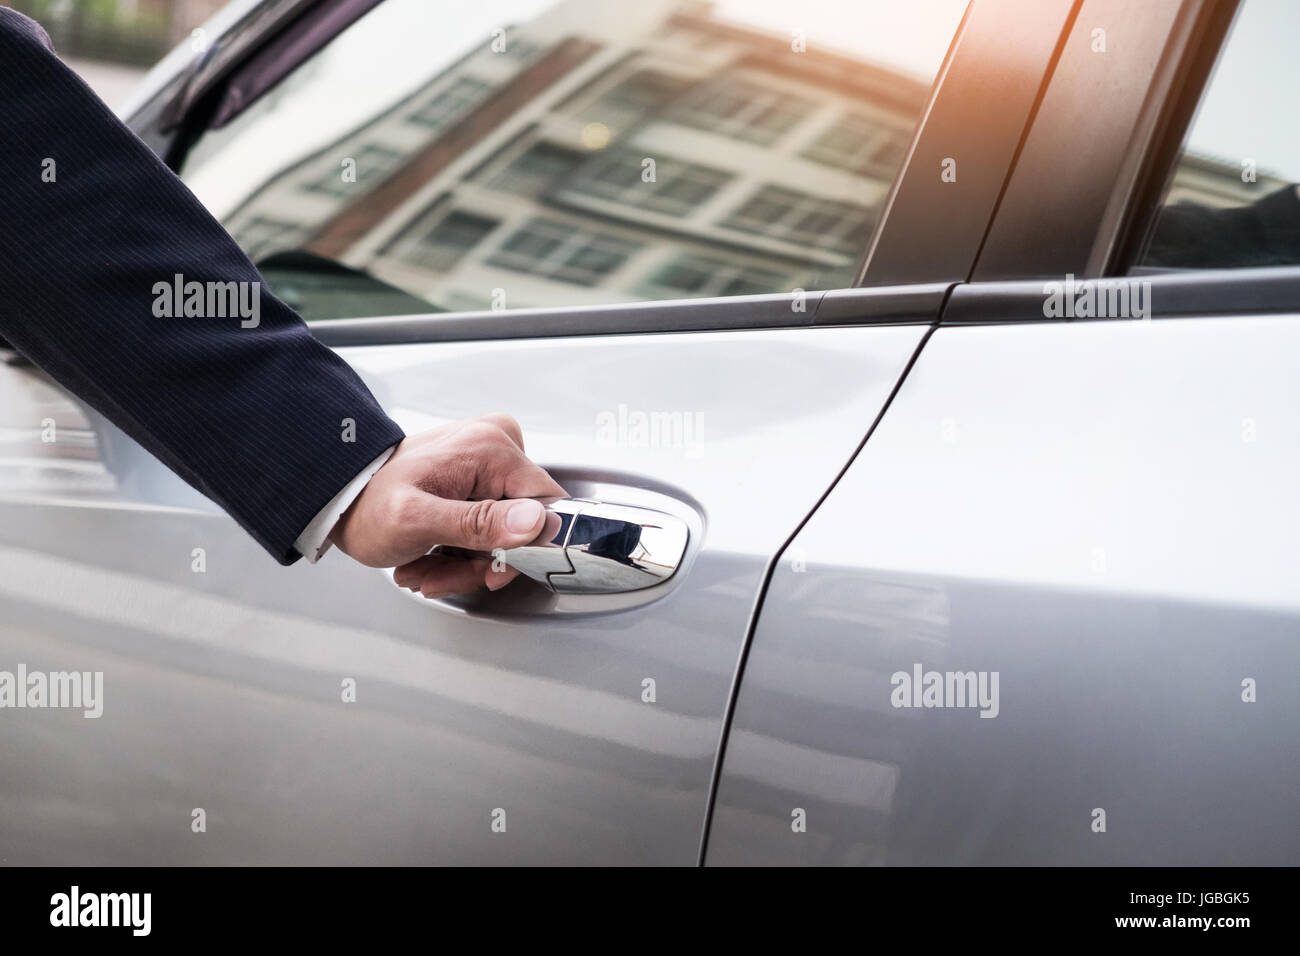 Chauffeur s hand on handle. Close-up of man in formal wear opening a passenger car door. Stock Photo